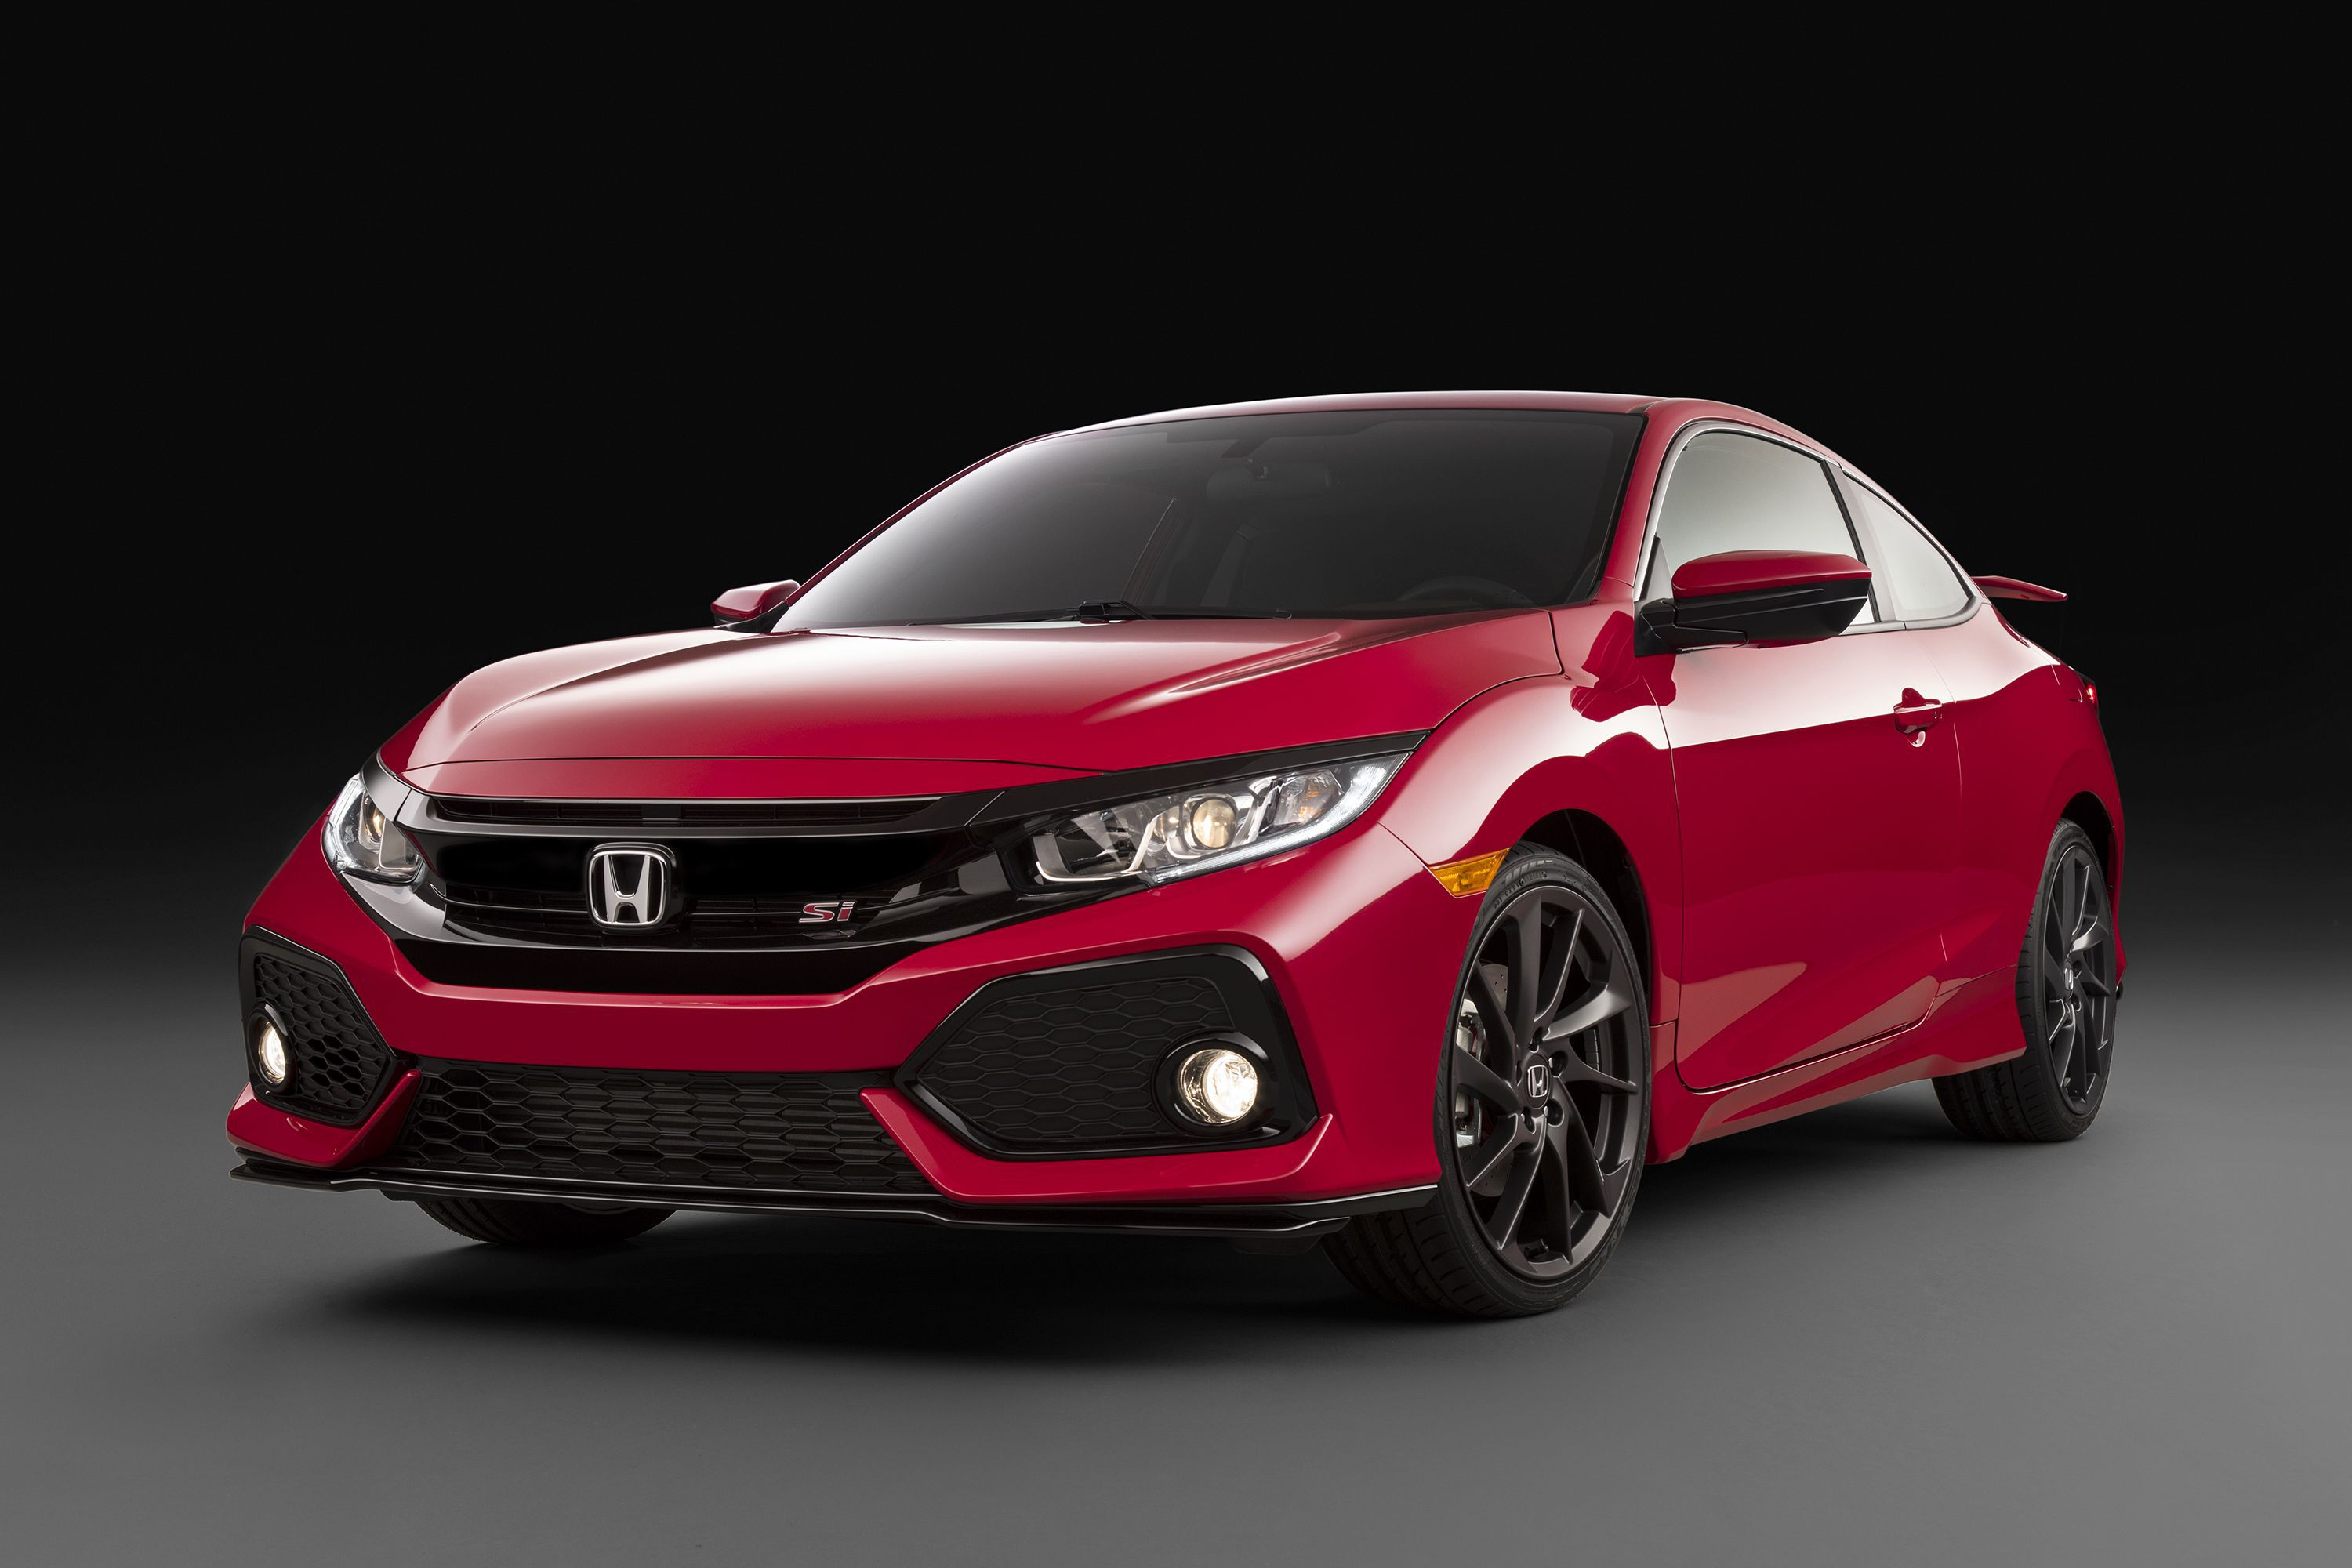 Paintless Dent Repair for Your Honda CIVIC